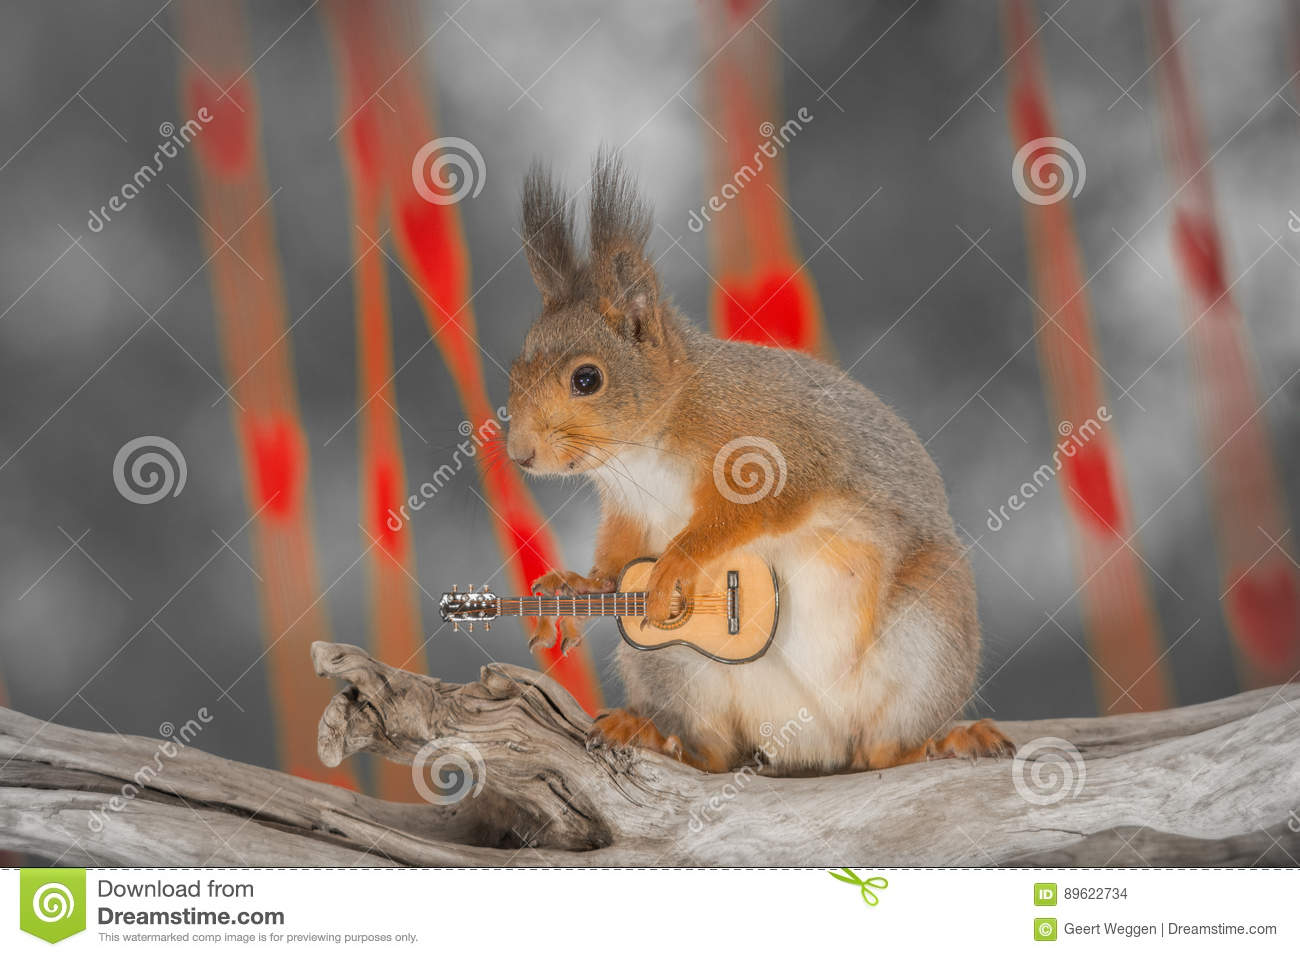 play a song for me stock photo image of eyes rodent 89622734